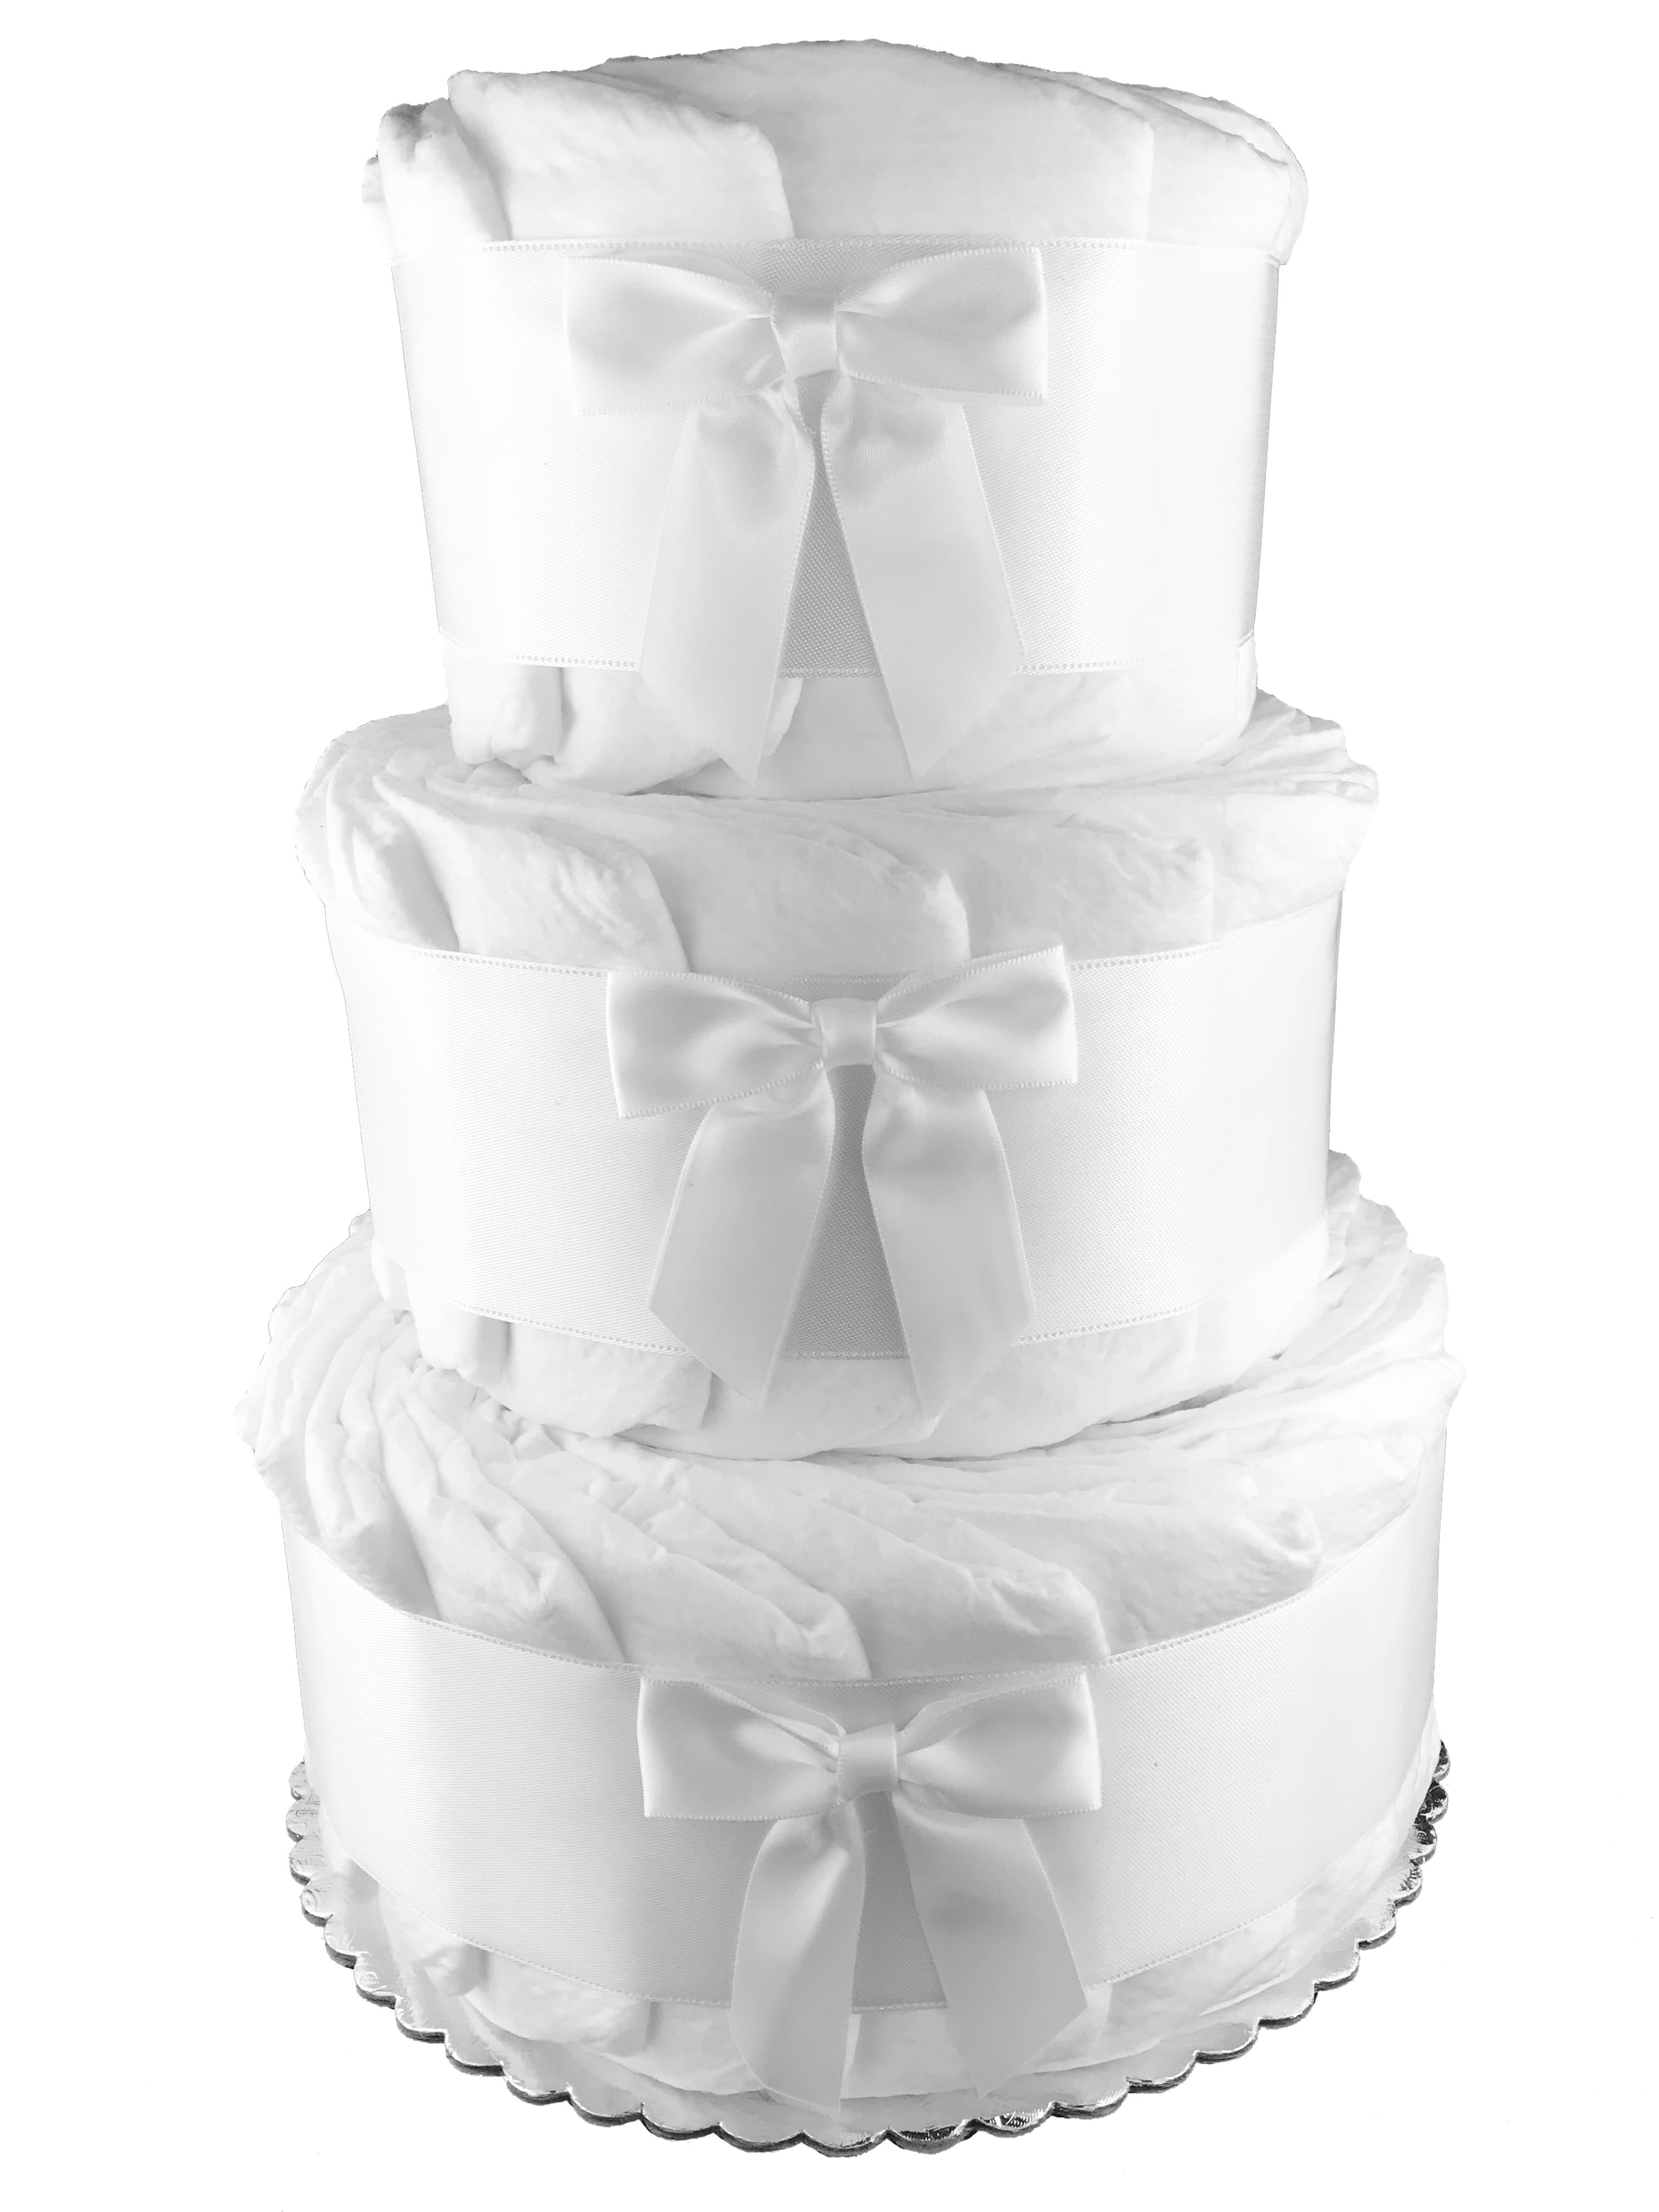 How to do a diaper cake for baby shower